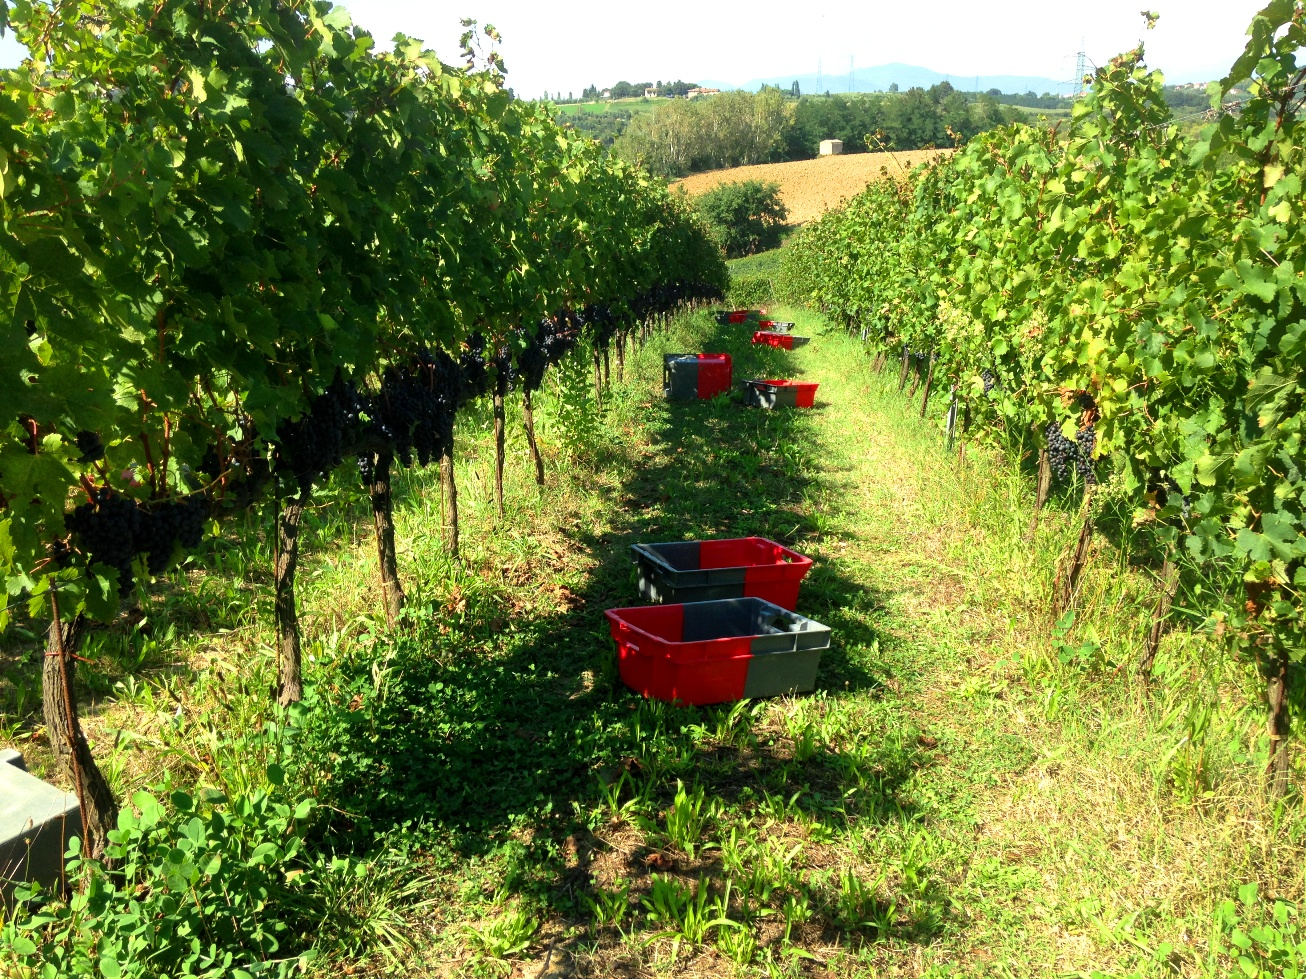 Crates in the vineyard